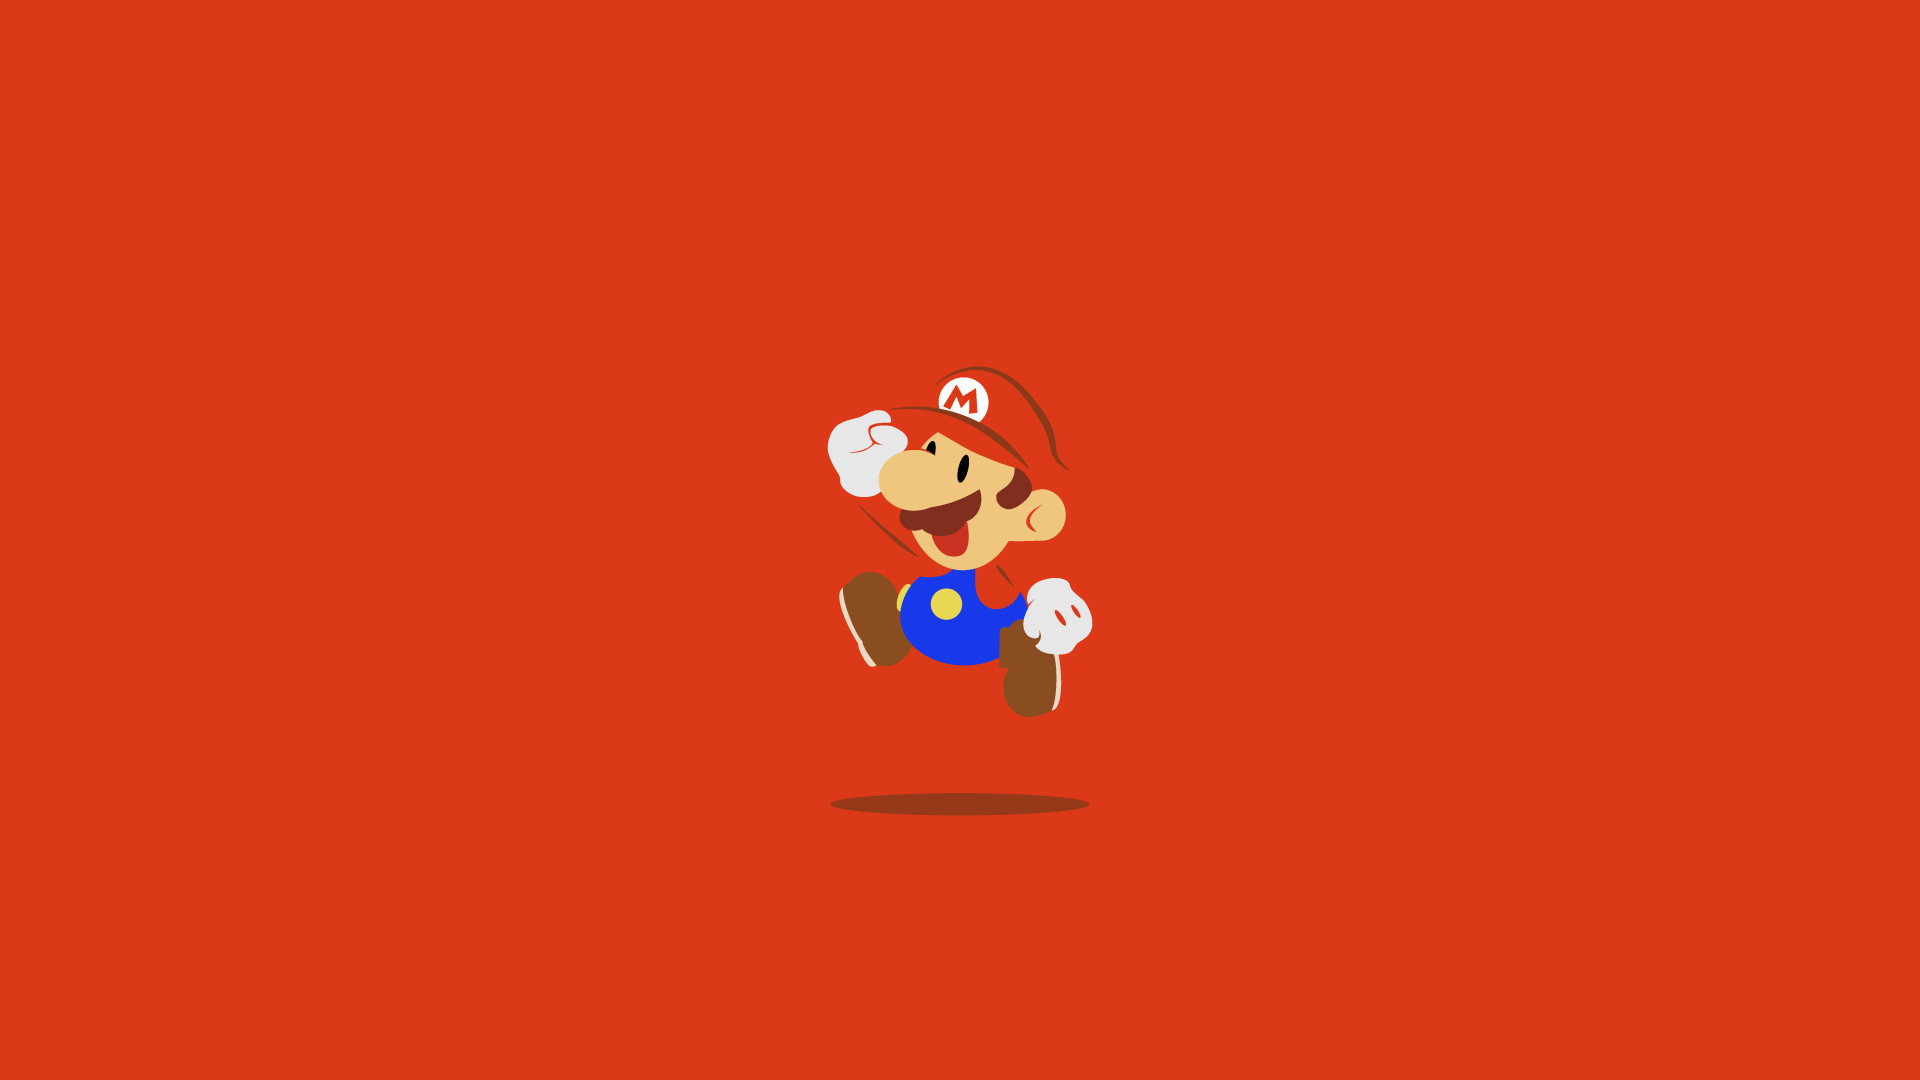 1920x1080 Red desktop wallpaper with Super Mario jumping.